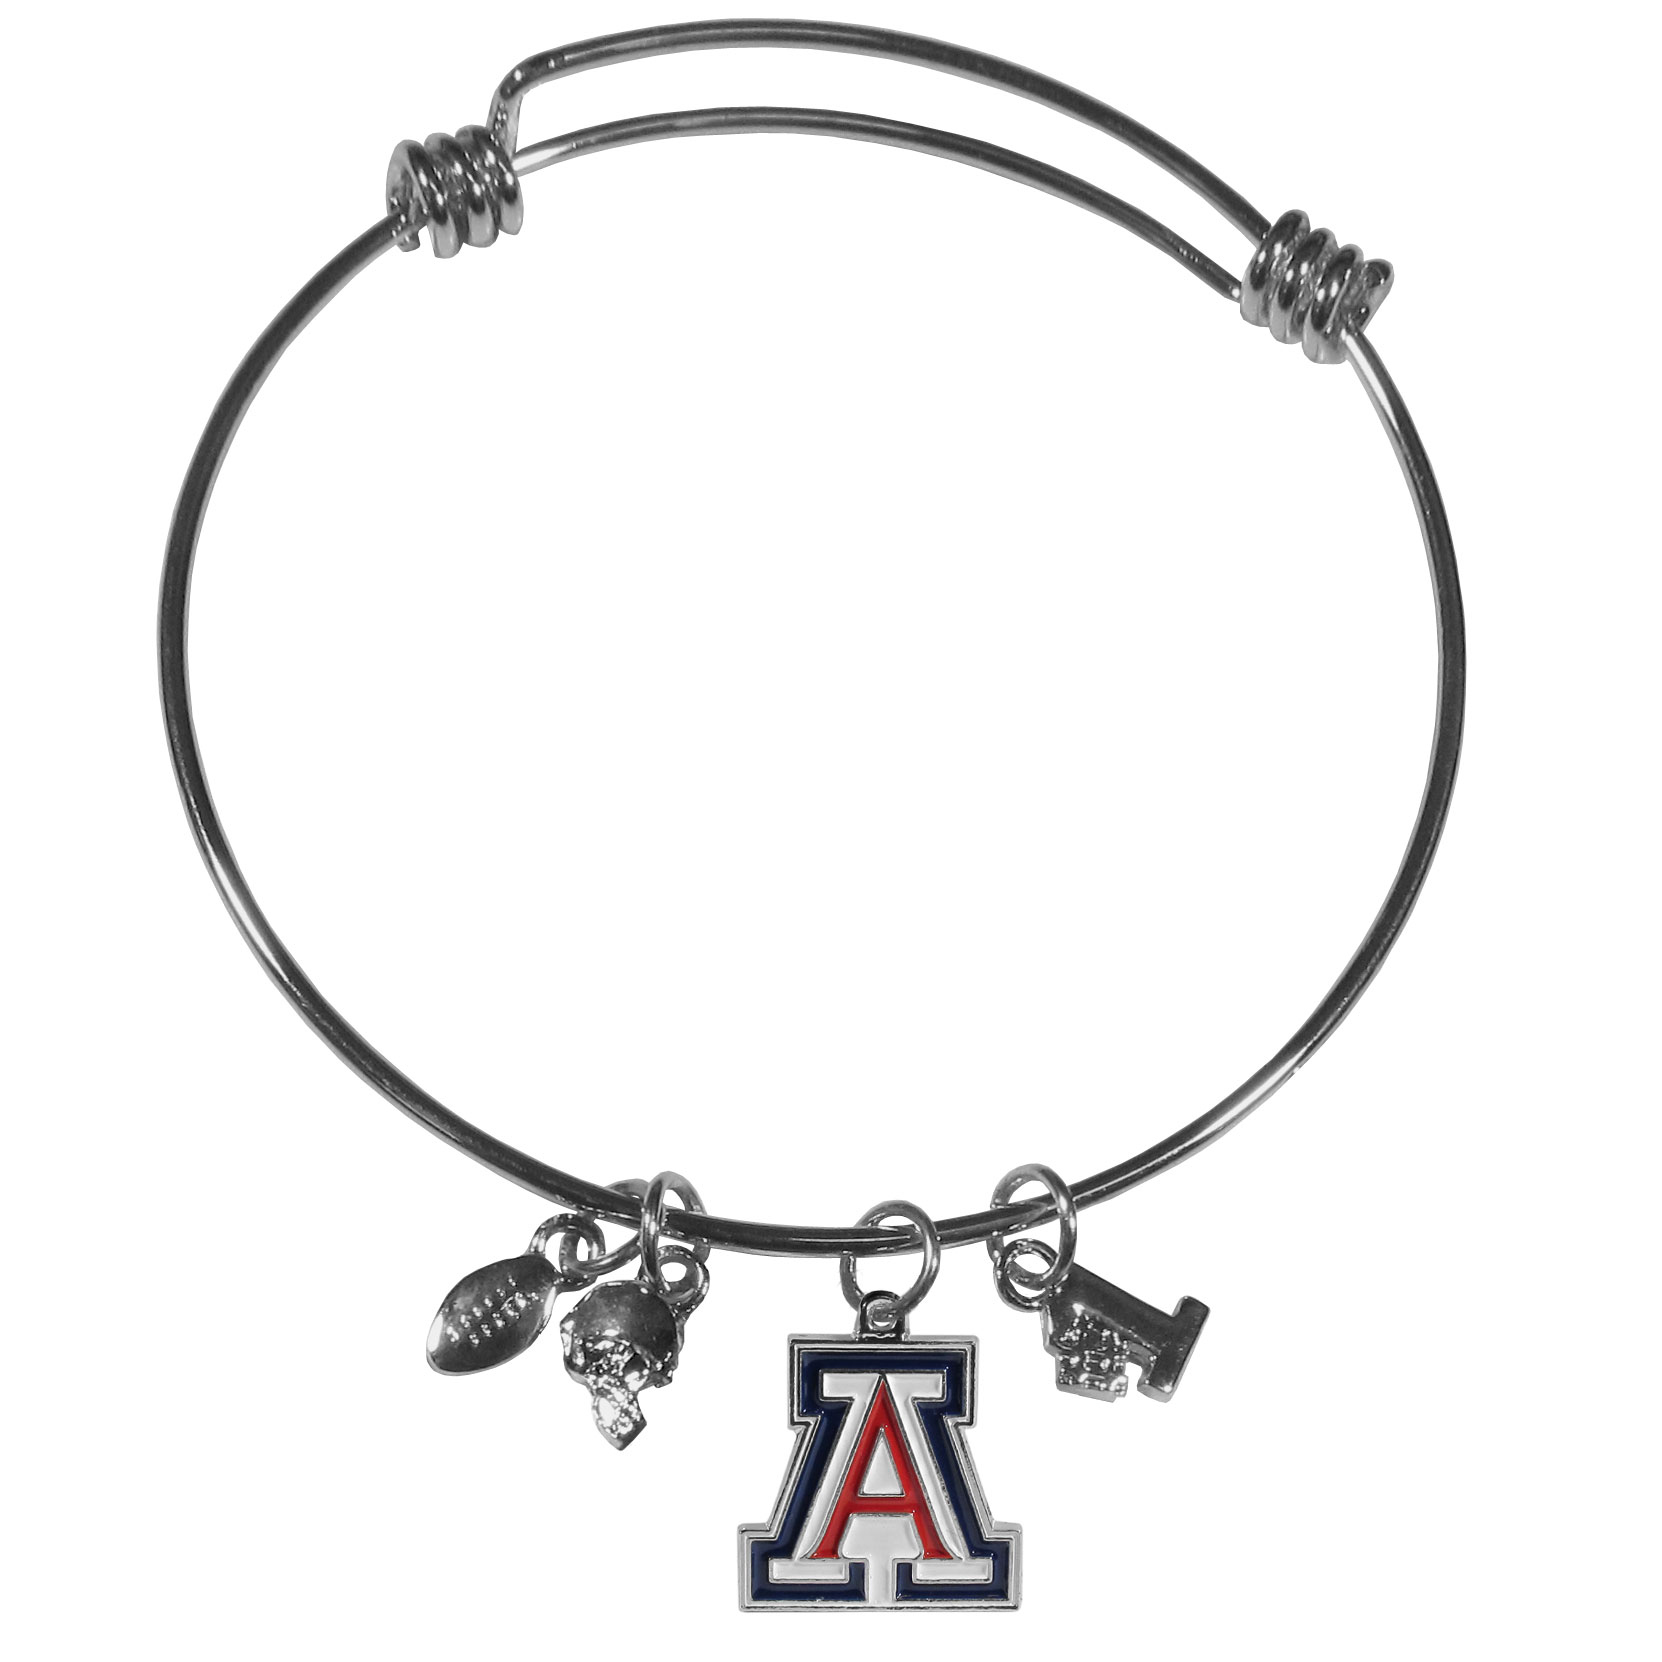 Arizona Wildcats Charm Bangle Bracelet - Ladies, just because you're a sports fan does not mean you have to give up on your trendy, fashion jewelry. This bangle bracelet is a perfect statement piece that is a stylish blend of designer inspired fashion and your love of your team. The popular style of adjustable wire bracelet has a contemporary look and comes with 3 sassy football inspired charms and 1, beautifully detailed team charm. Be a trendsetter with this Arizona Wildcats must-have fashion bracelet that is eye-catching enough for game-day but chic enough for everyday.